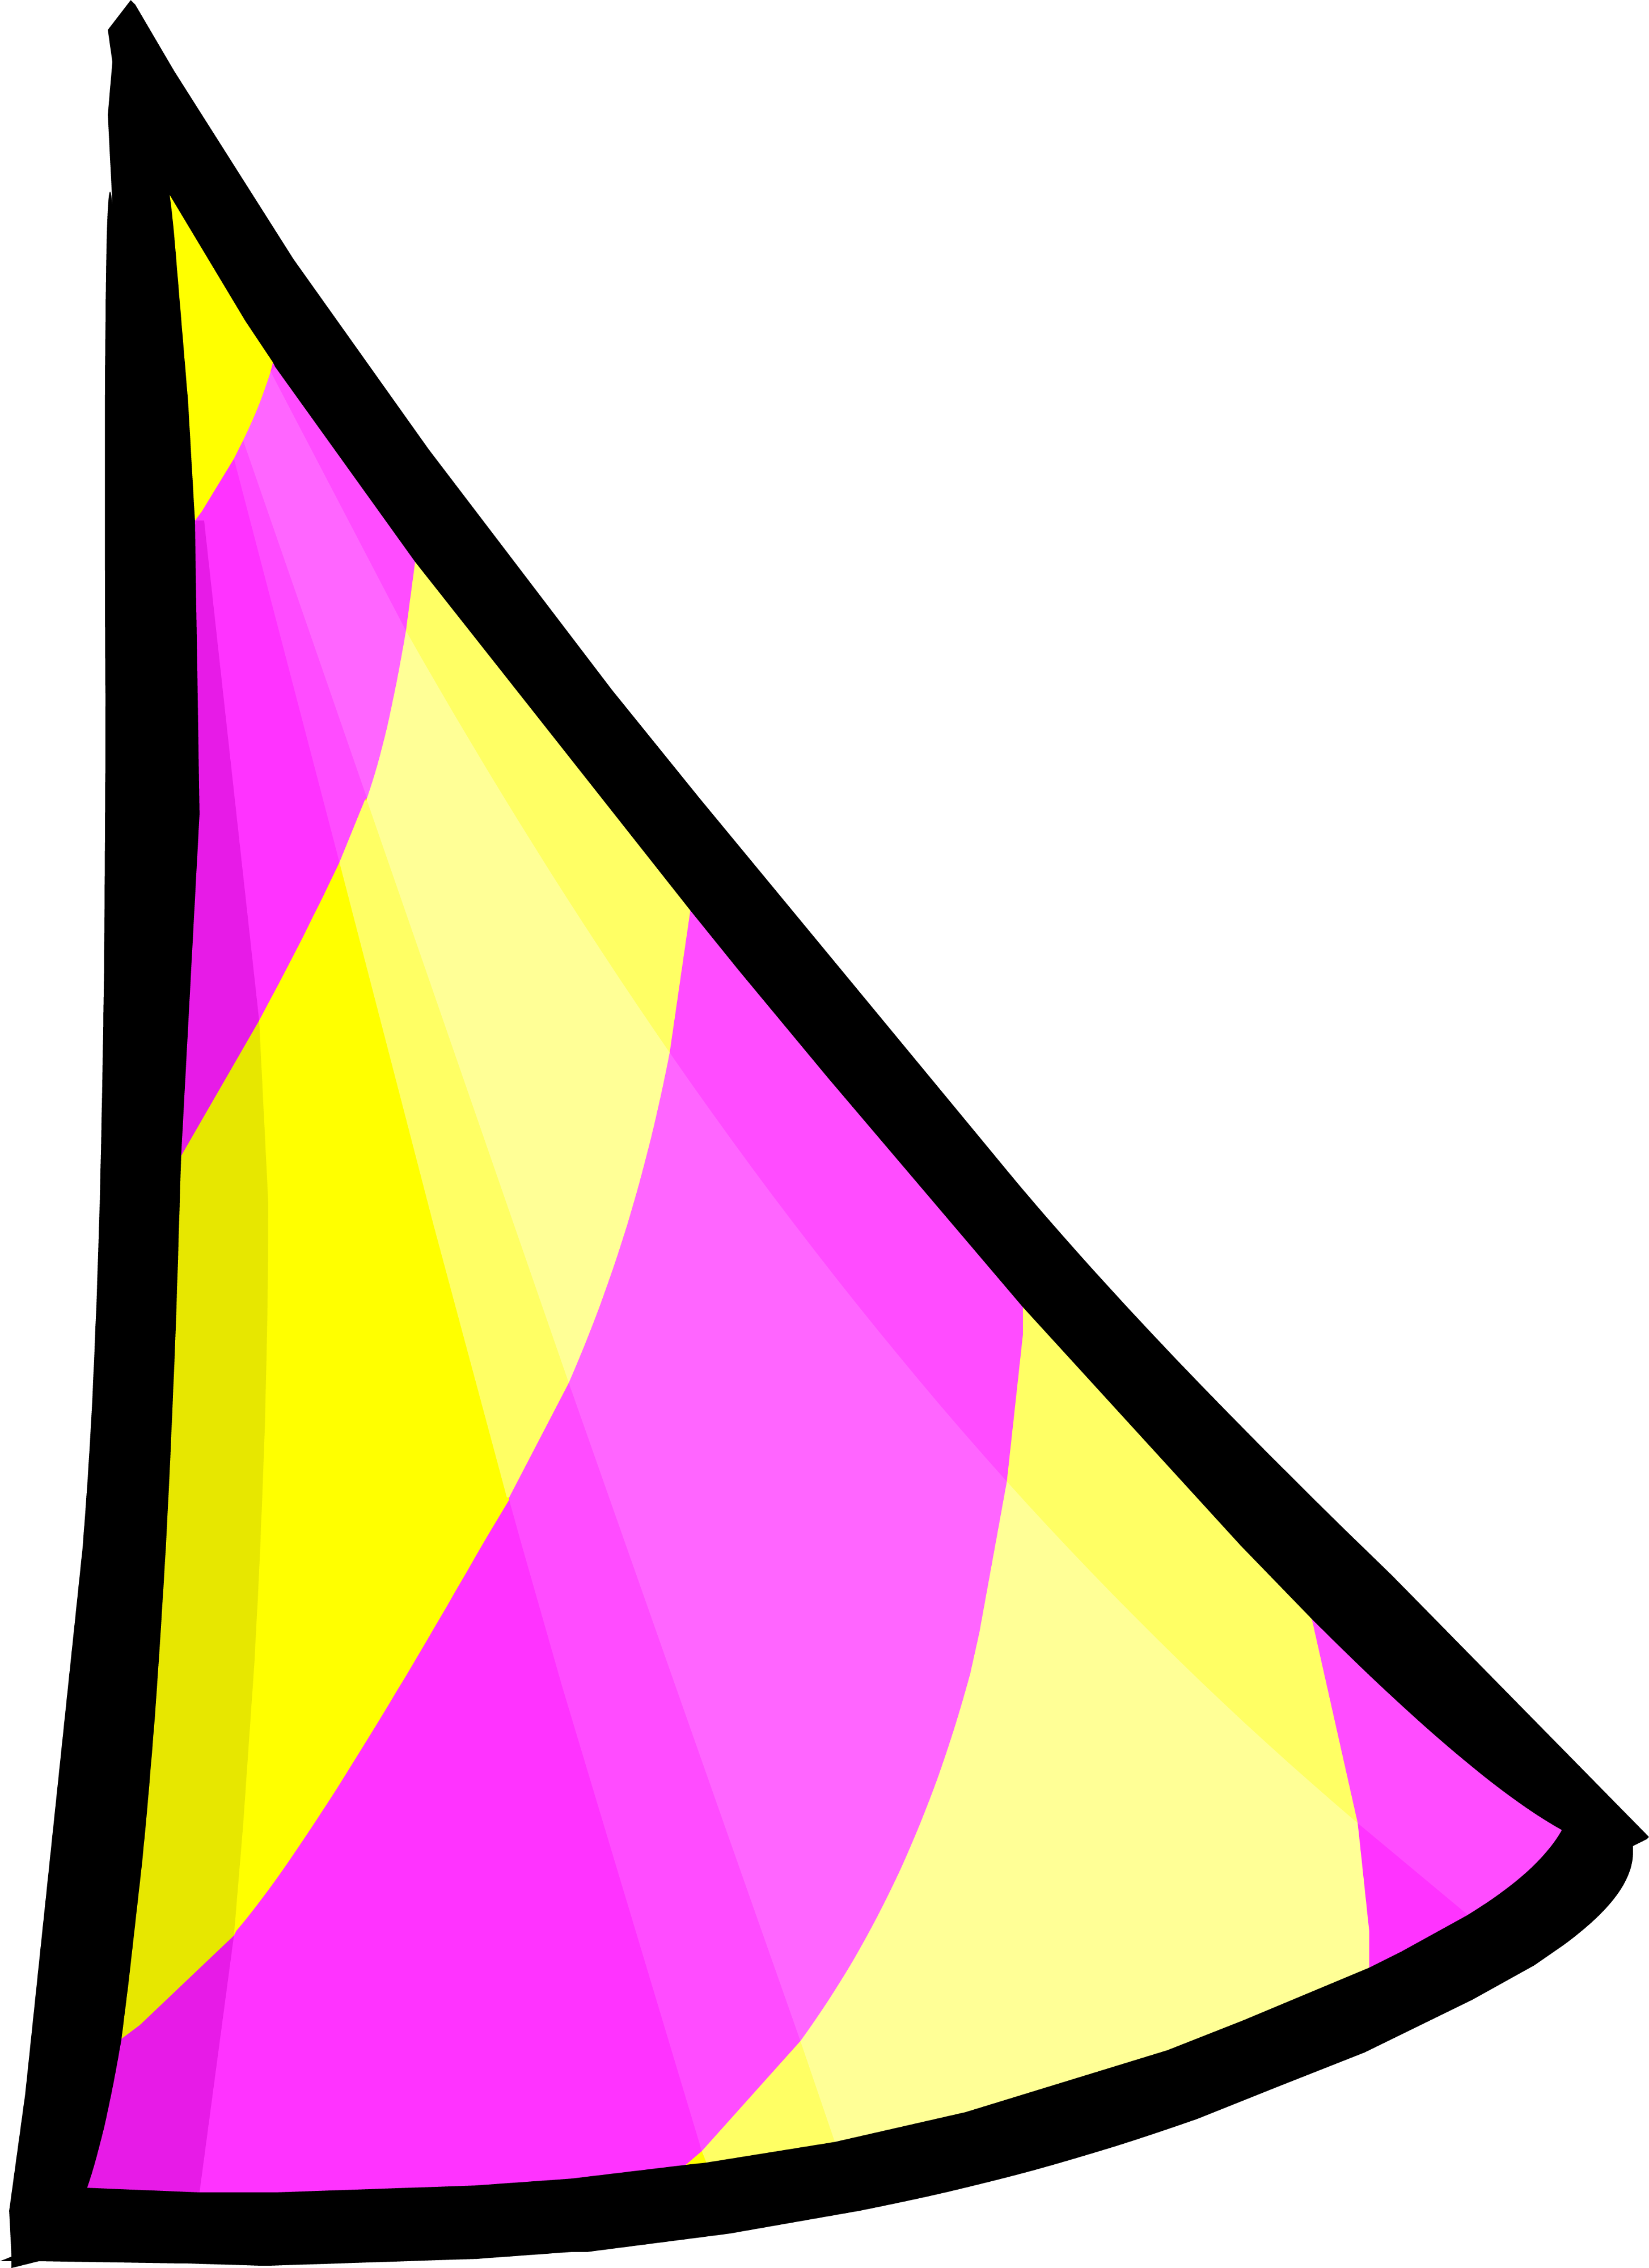 Triangle clipart item By Penguin Party FANDOM Club